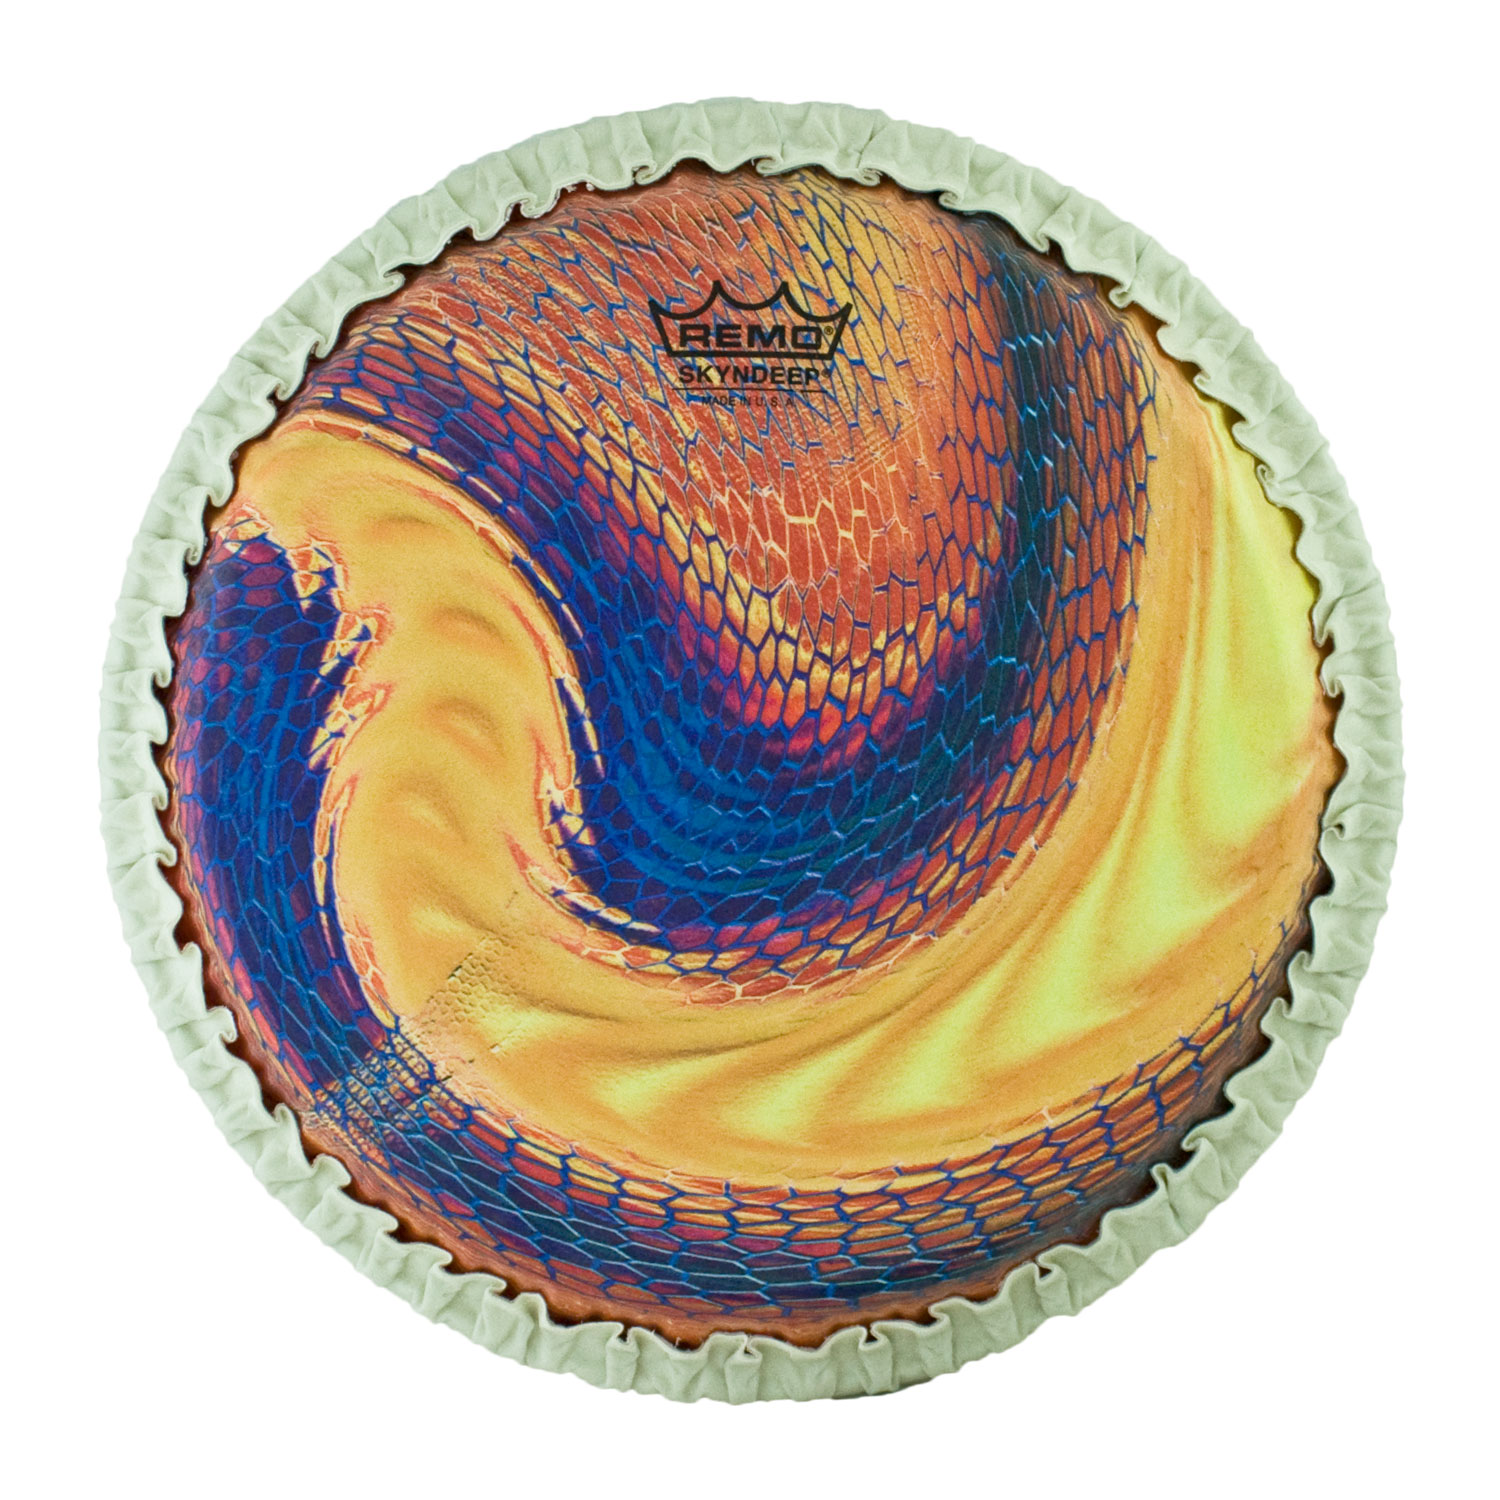 "Remo 11.06"" Tucked Skyndeep Conga Drum Head with Serpentine Day Graphic"